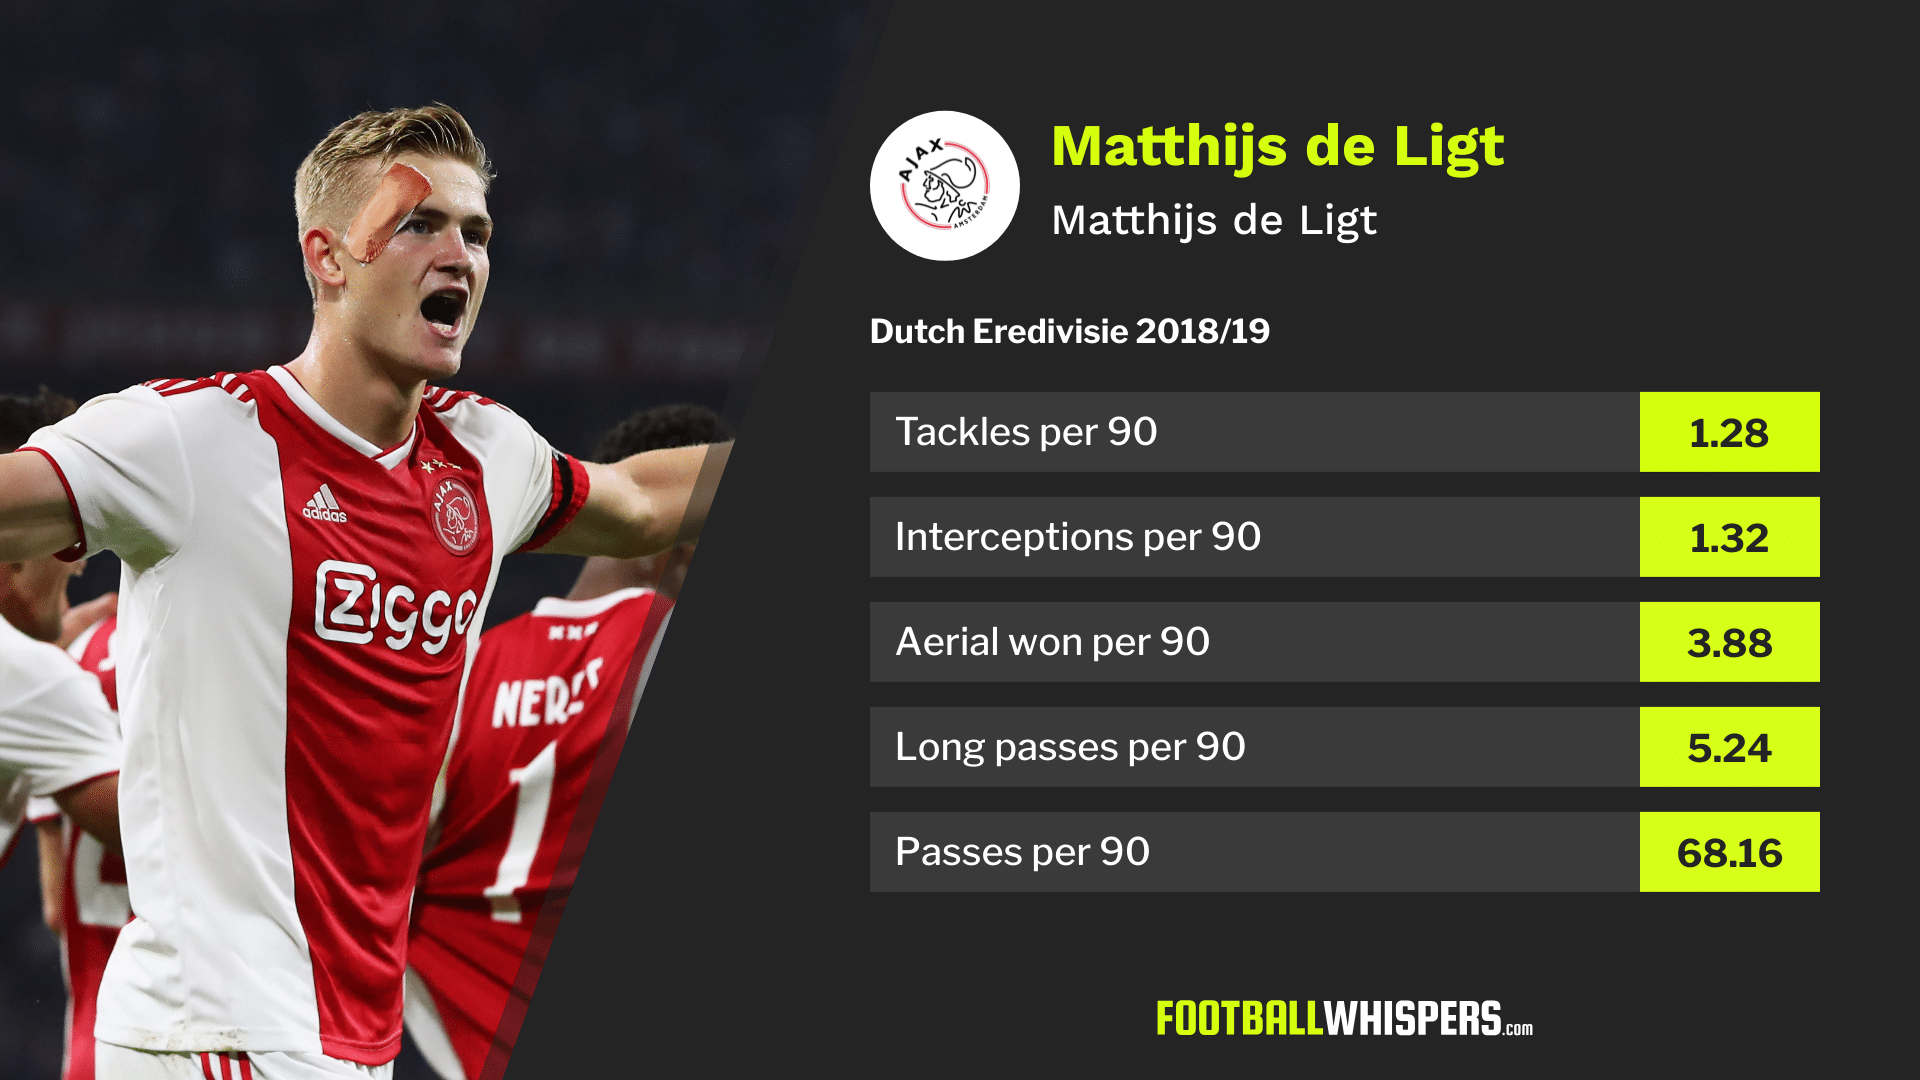 The six potential destinations for de Ligt analysed